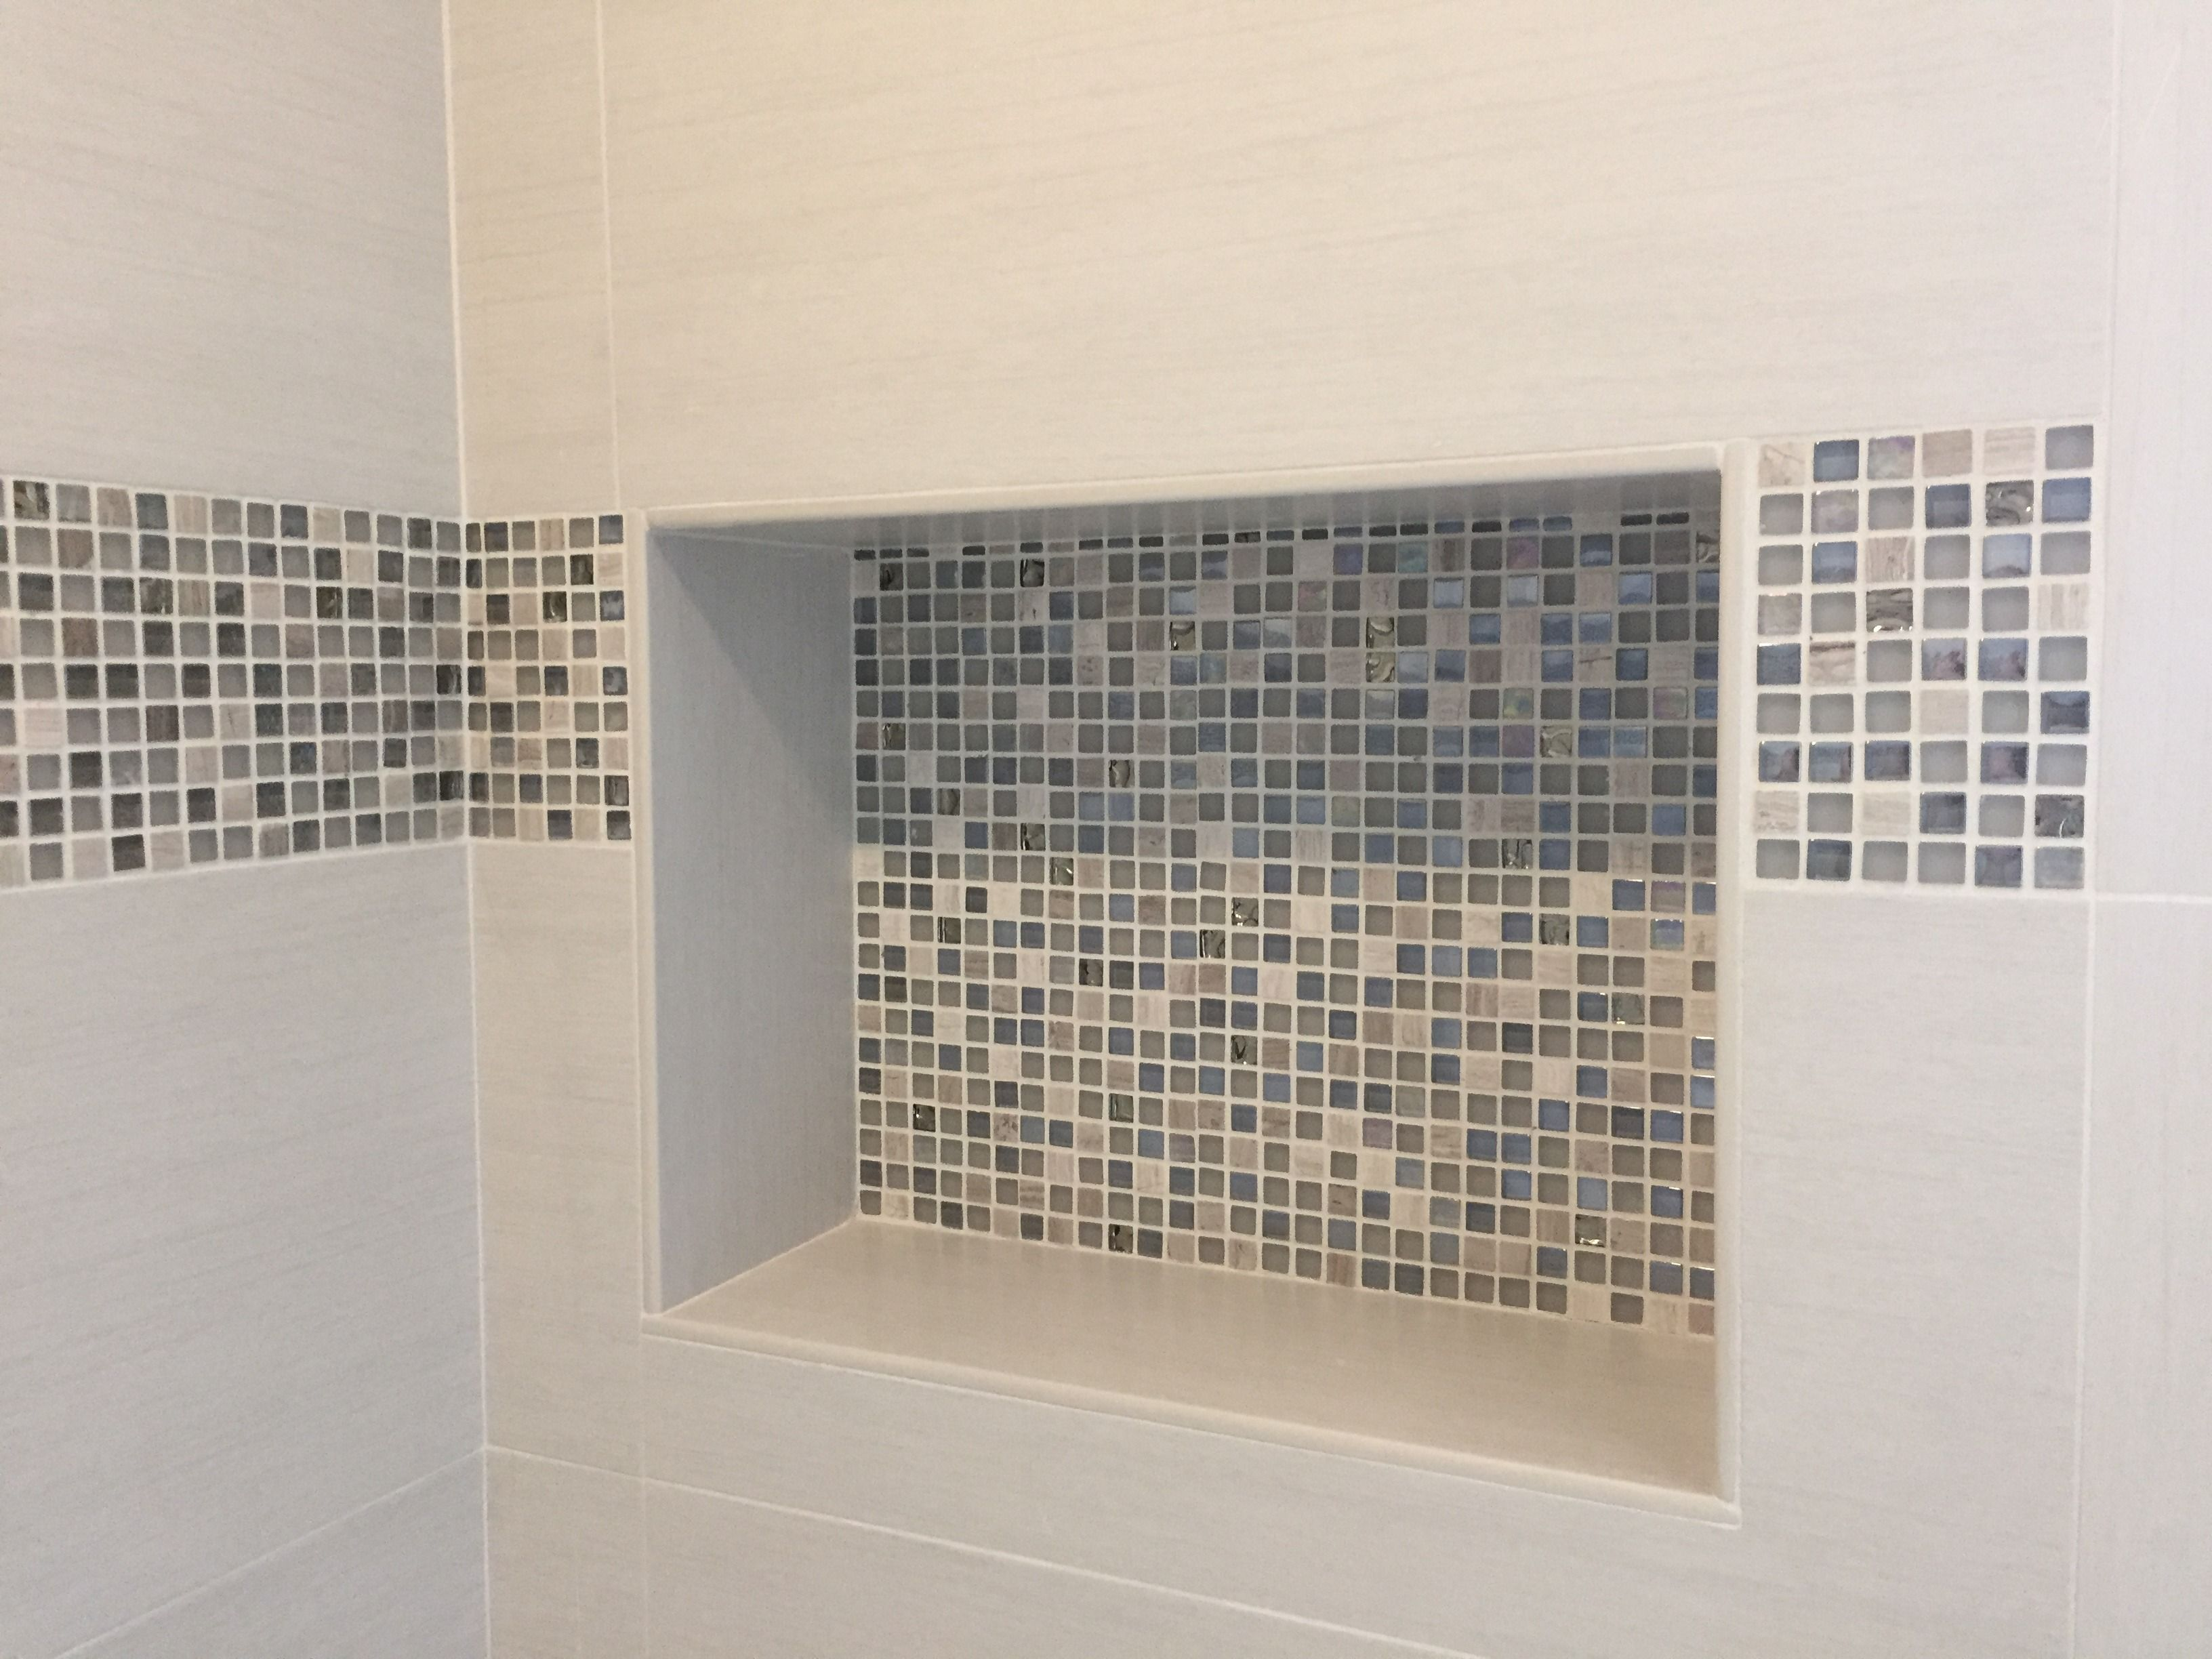 Need a solution for shower storage? Are you sick of those ugly hard-to-clean metal over-the-shower head shampoo holders! Go from bleh to bling with these great shower niche ideas! #showerniche #nichos https://arizonatile.com/en/products/browse?type=mosaics#utm_sguid=152185,49d3ede0-4a8f-c1ac-e606-6fdc1499001f